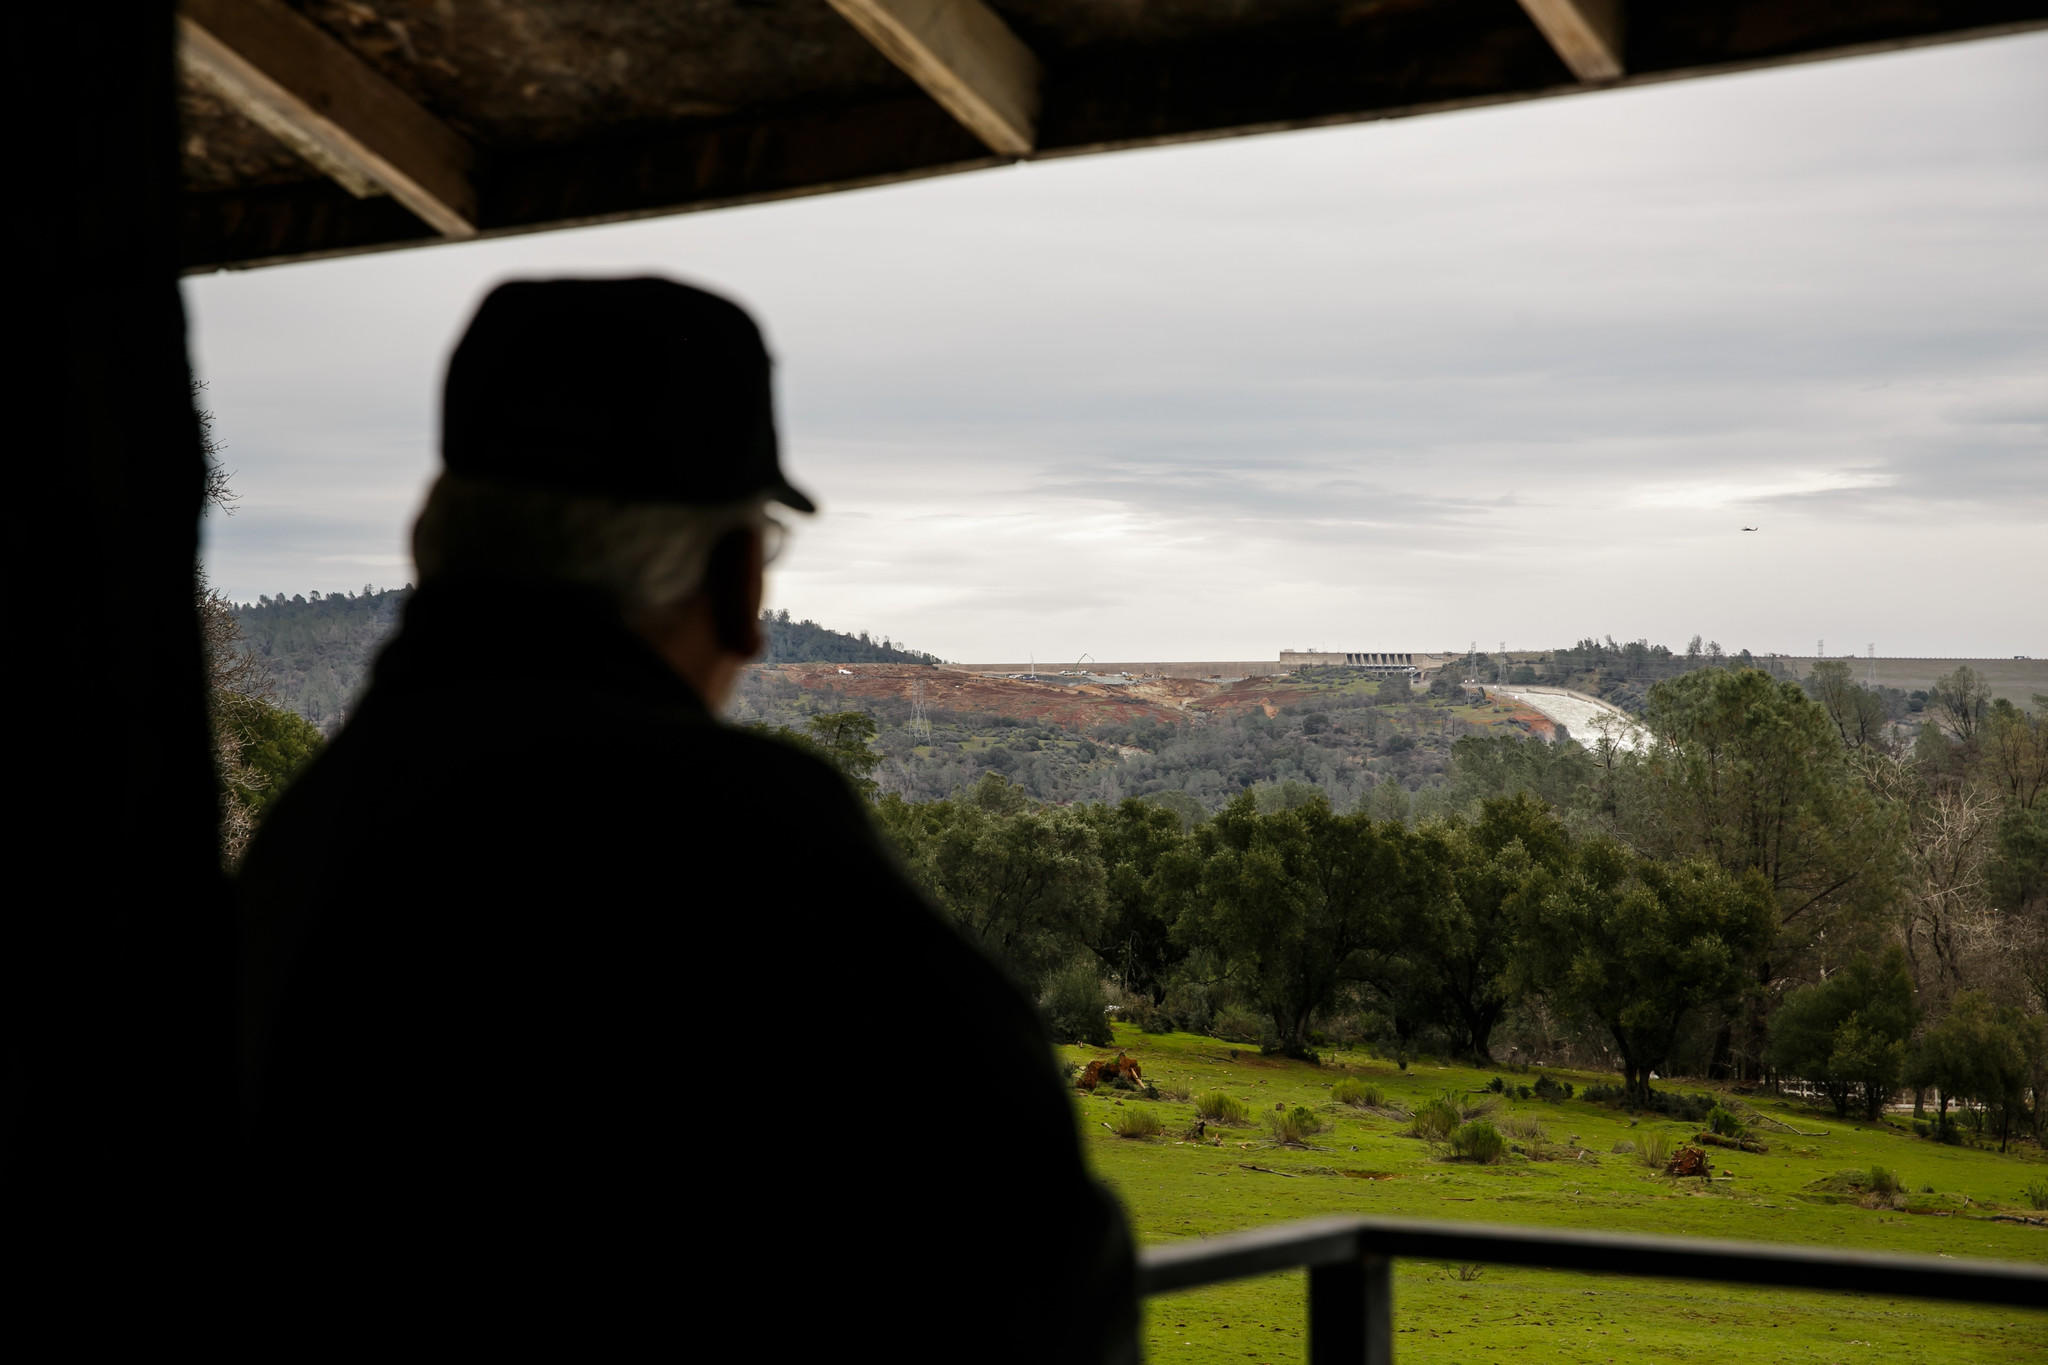 Life below Oroville Dam: Stoicism, faith     and cars poised for a